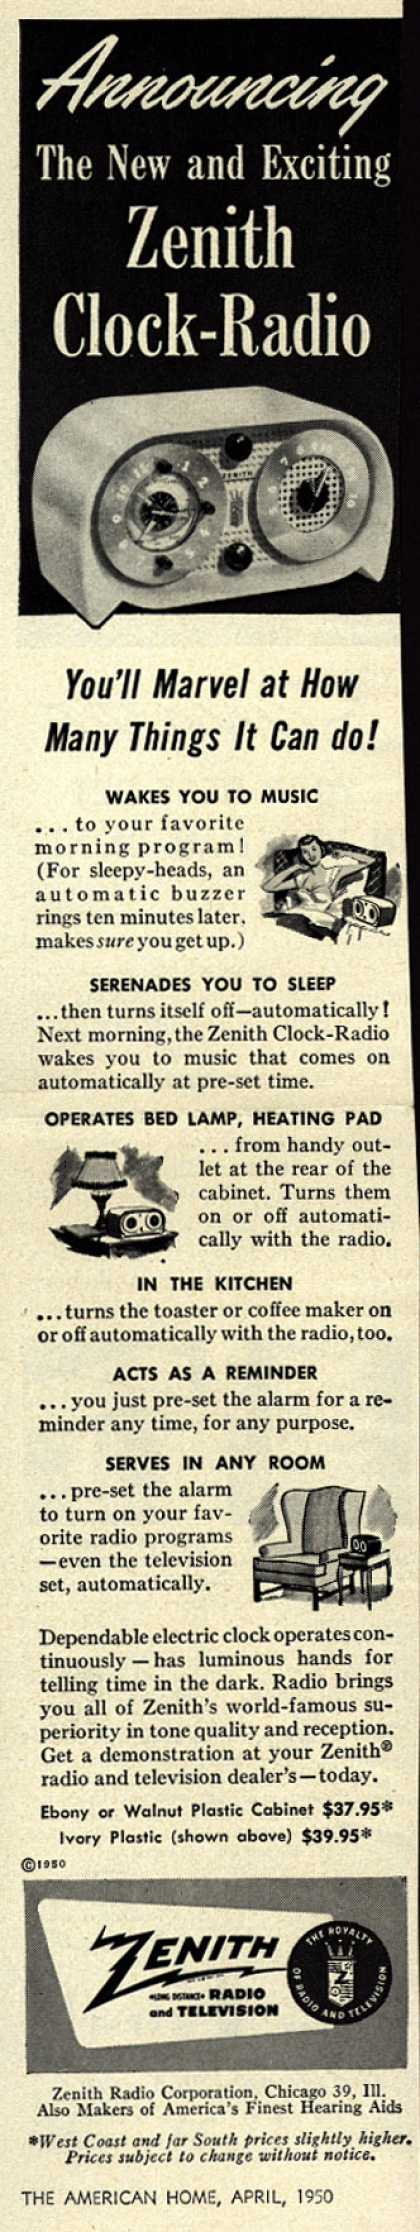 Zenith Radio Corporation's Clock-Radio – Announcing The New and Exciting Zenith Clock-Radio (1950)